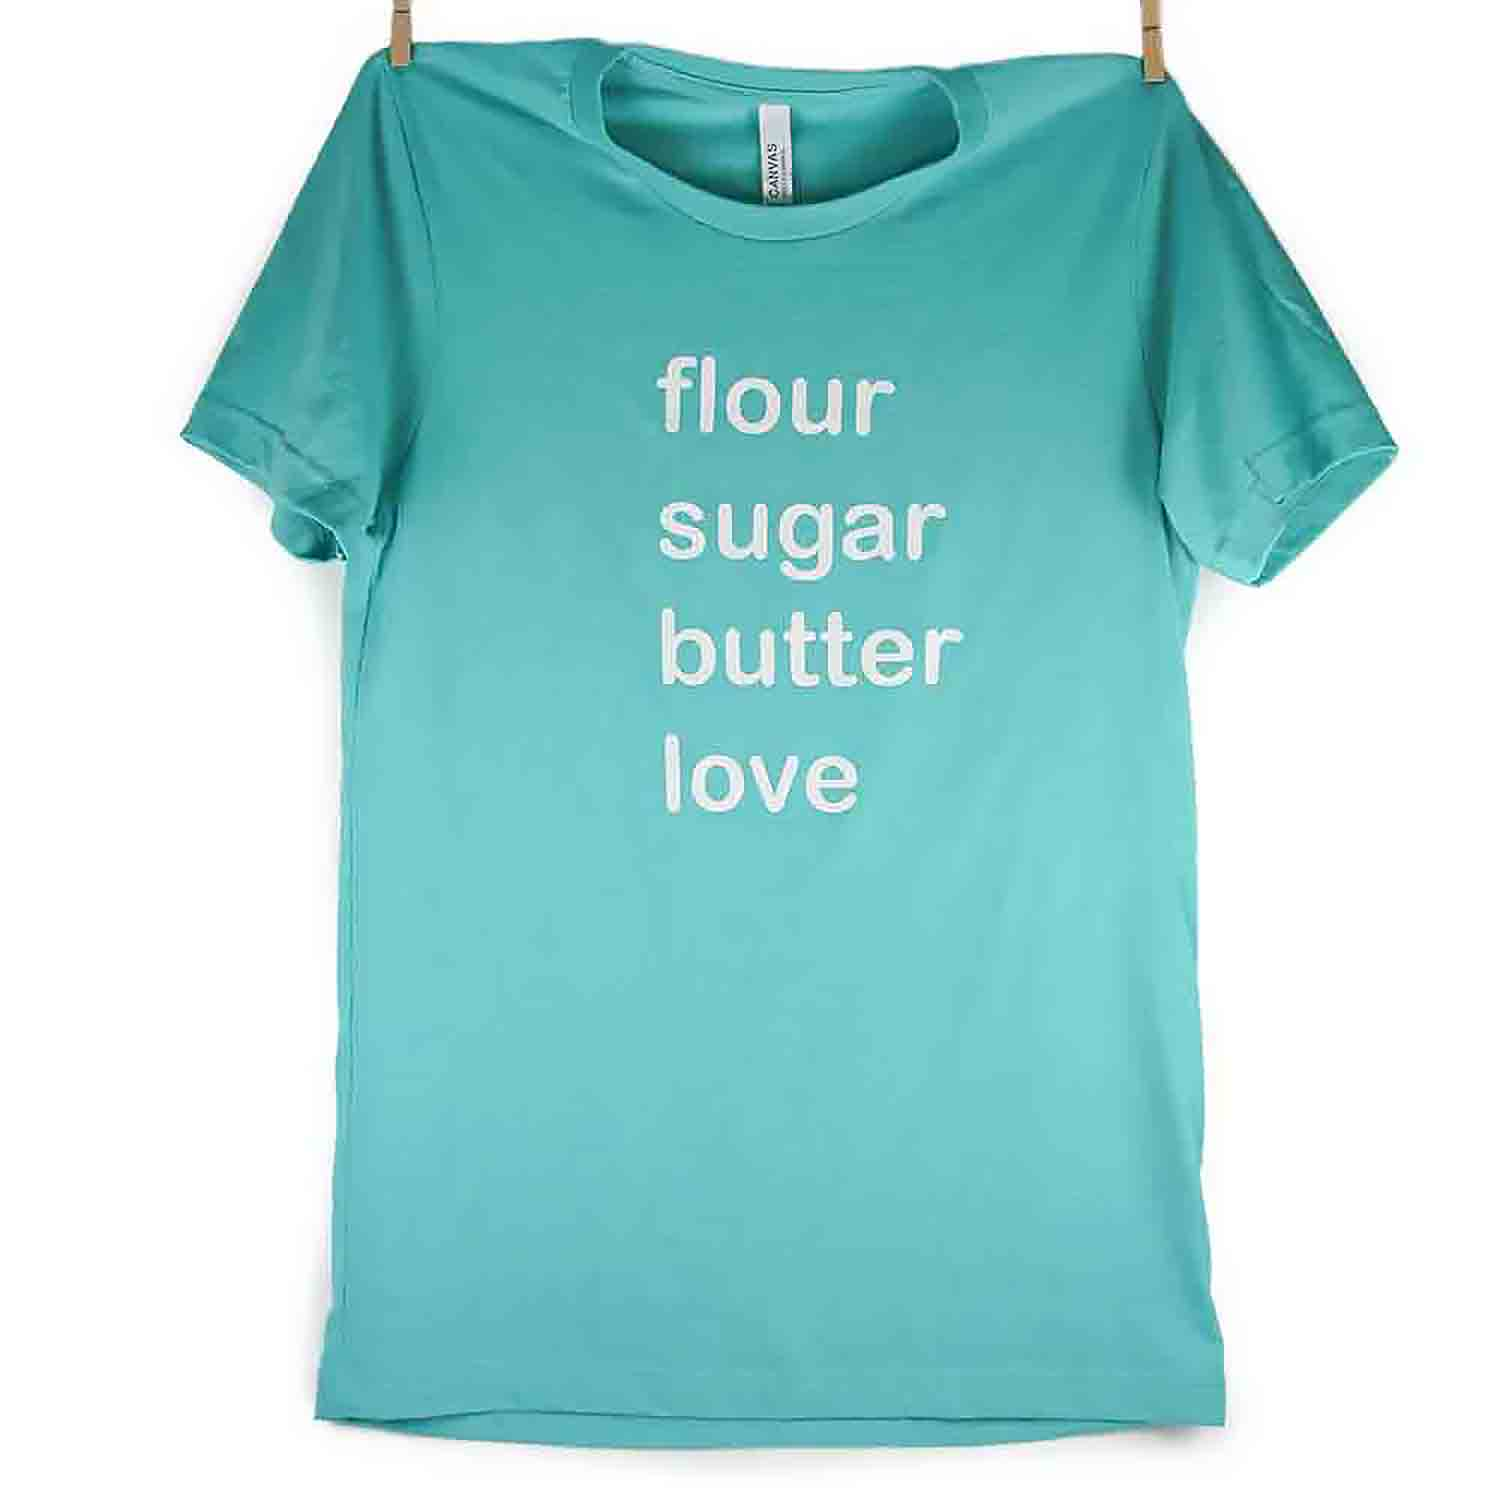 Teal Flour Sugar Butter Love T-Shirt - Small